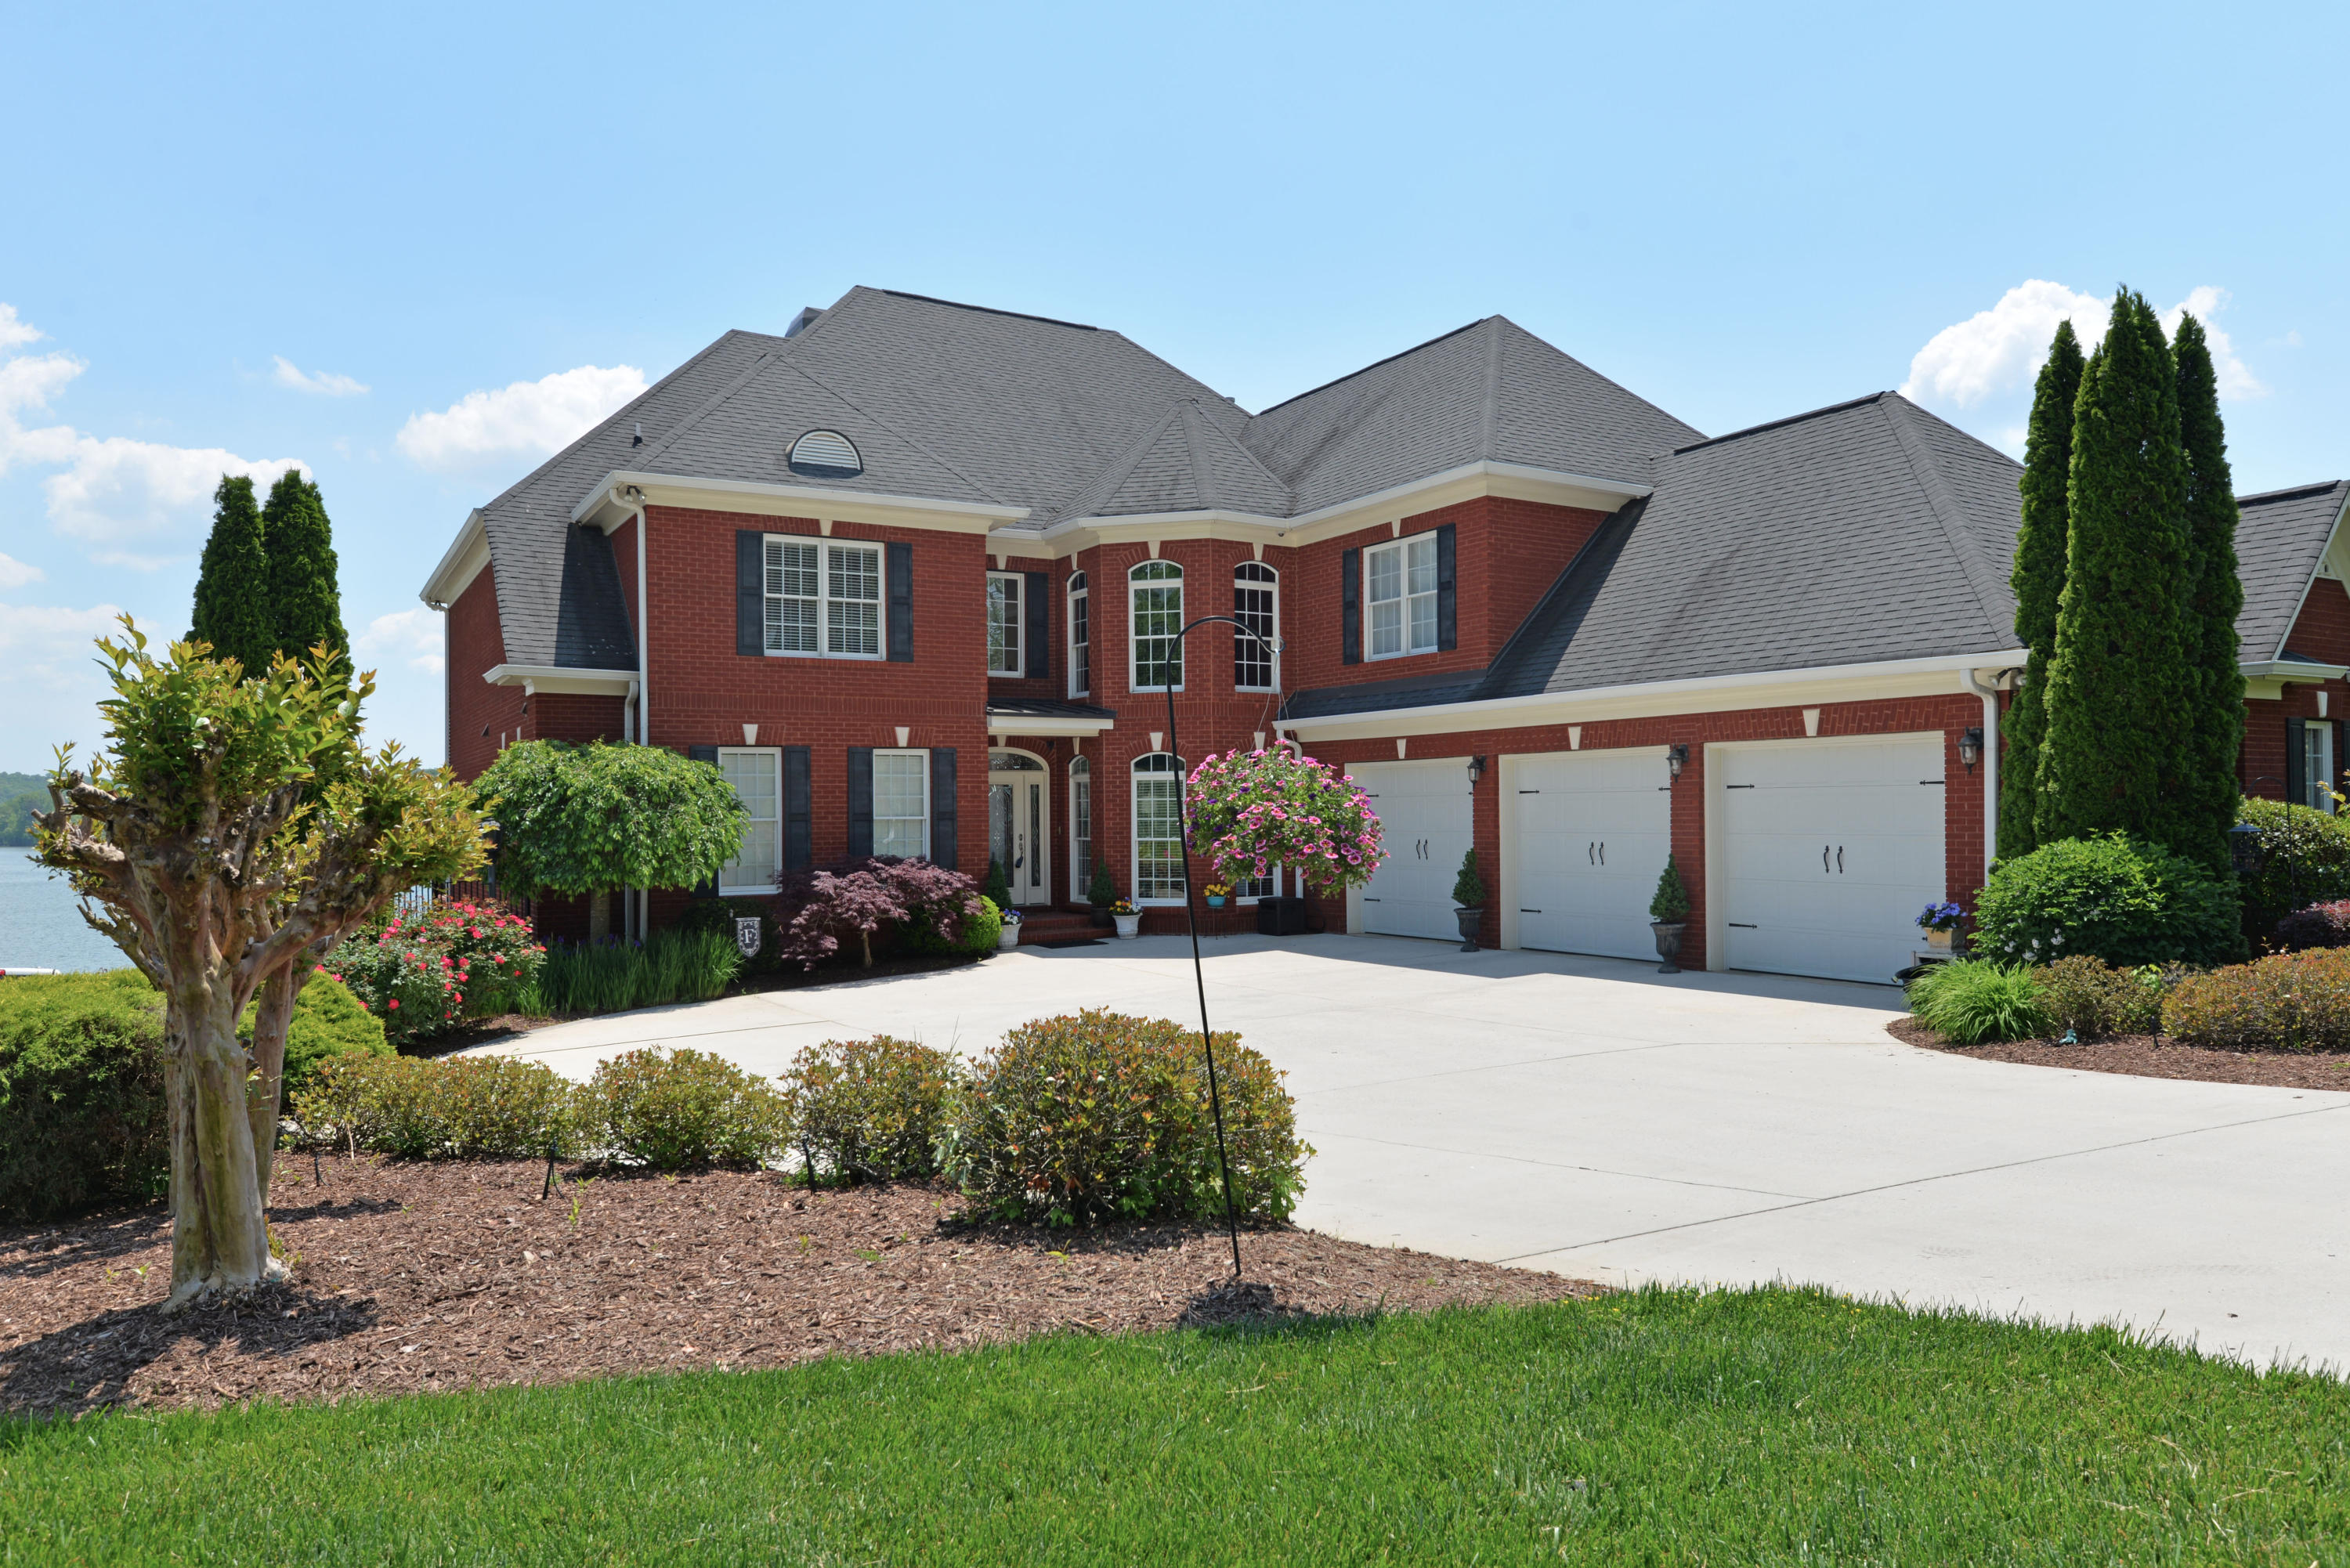 2623 Heron Cove Ln, Soddy Daisy, TN 37379